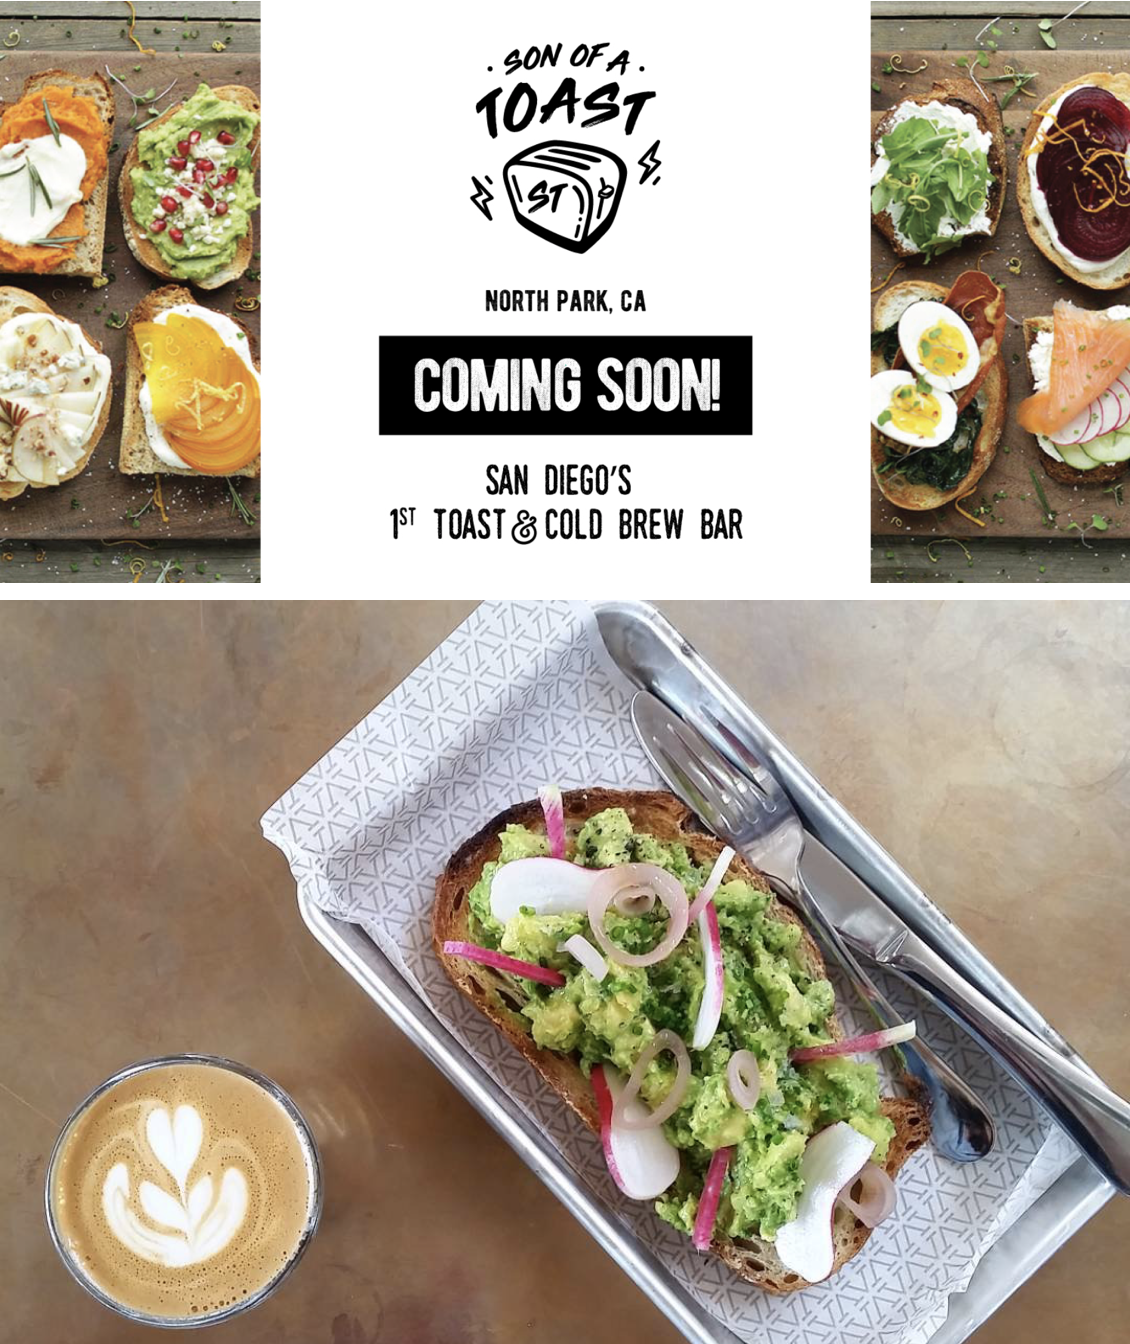 Sandiegoville A Toast Restaurant Is Opening In North Park